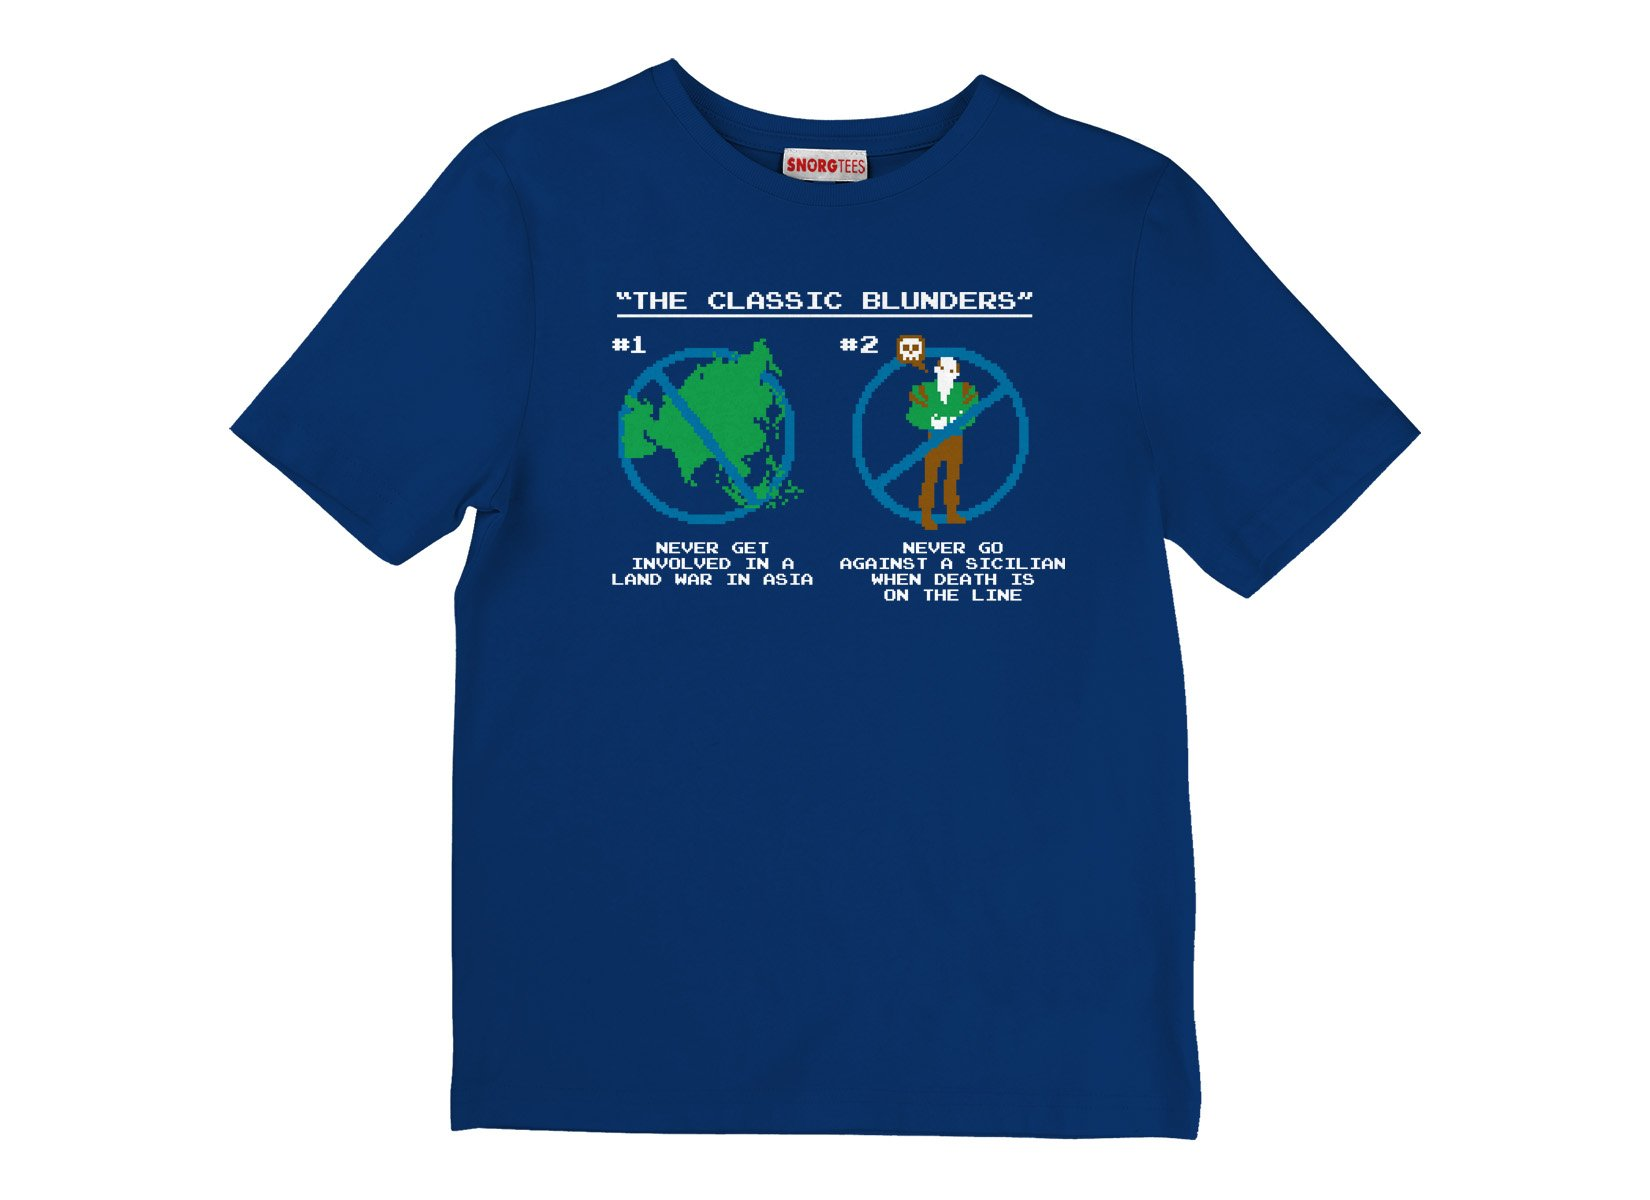 The Classic Blunders on Kids T-Shirt